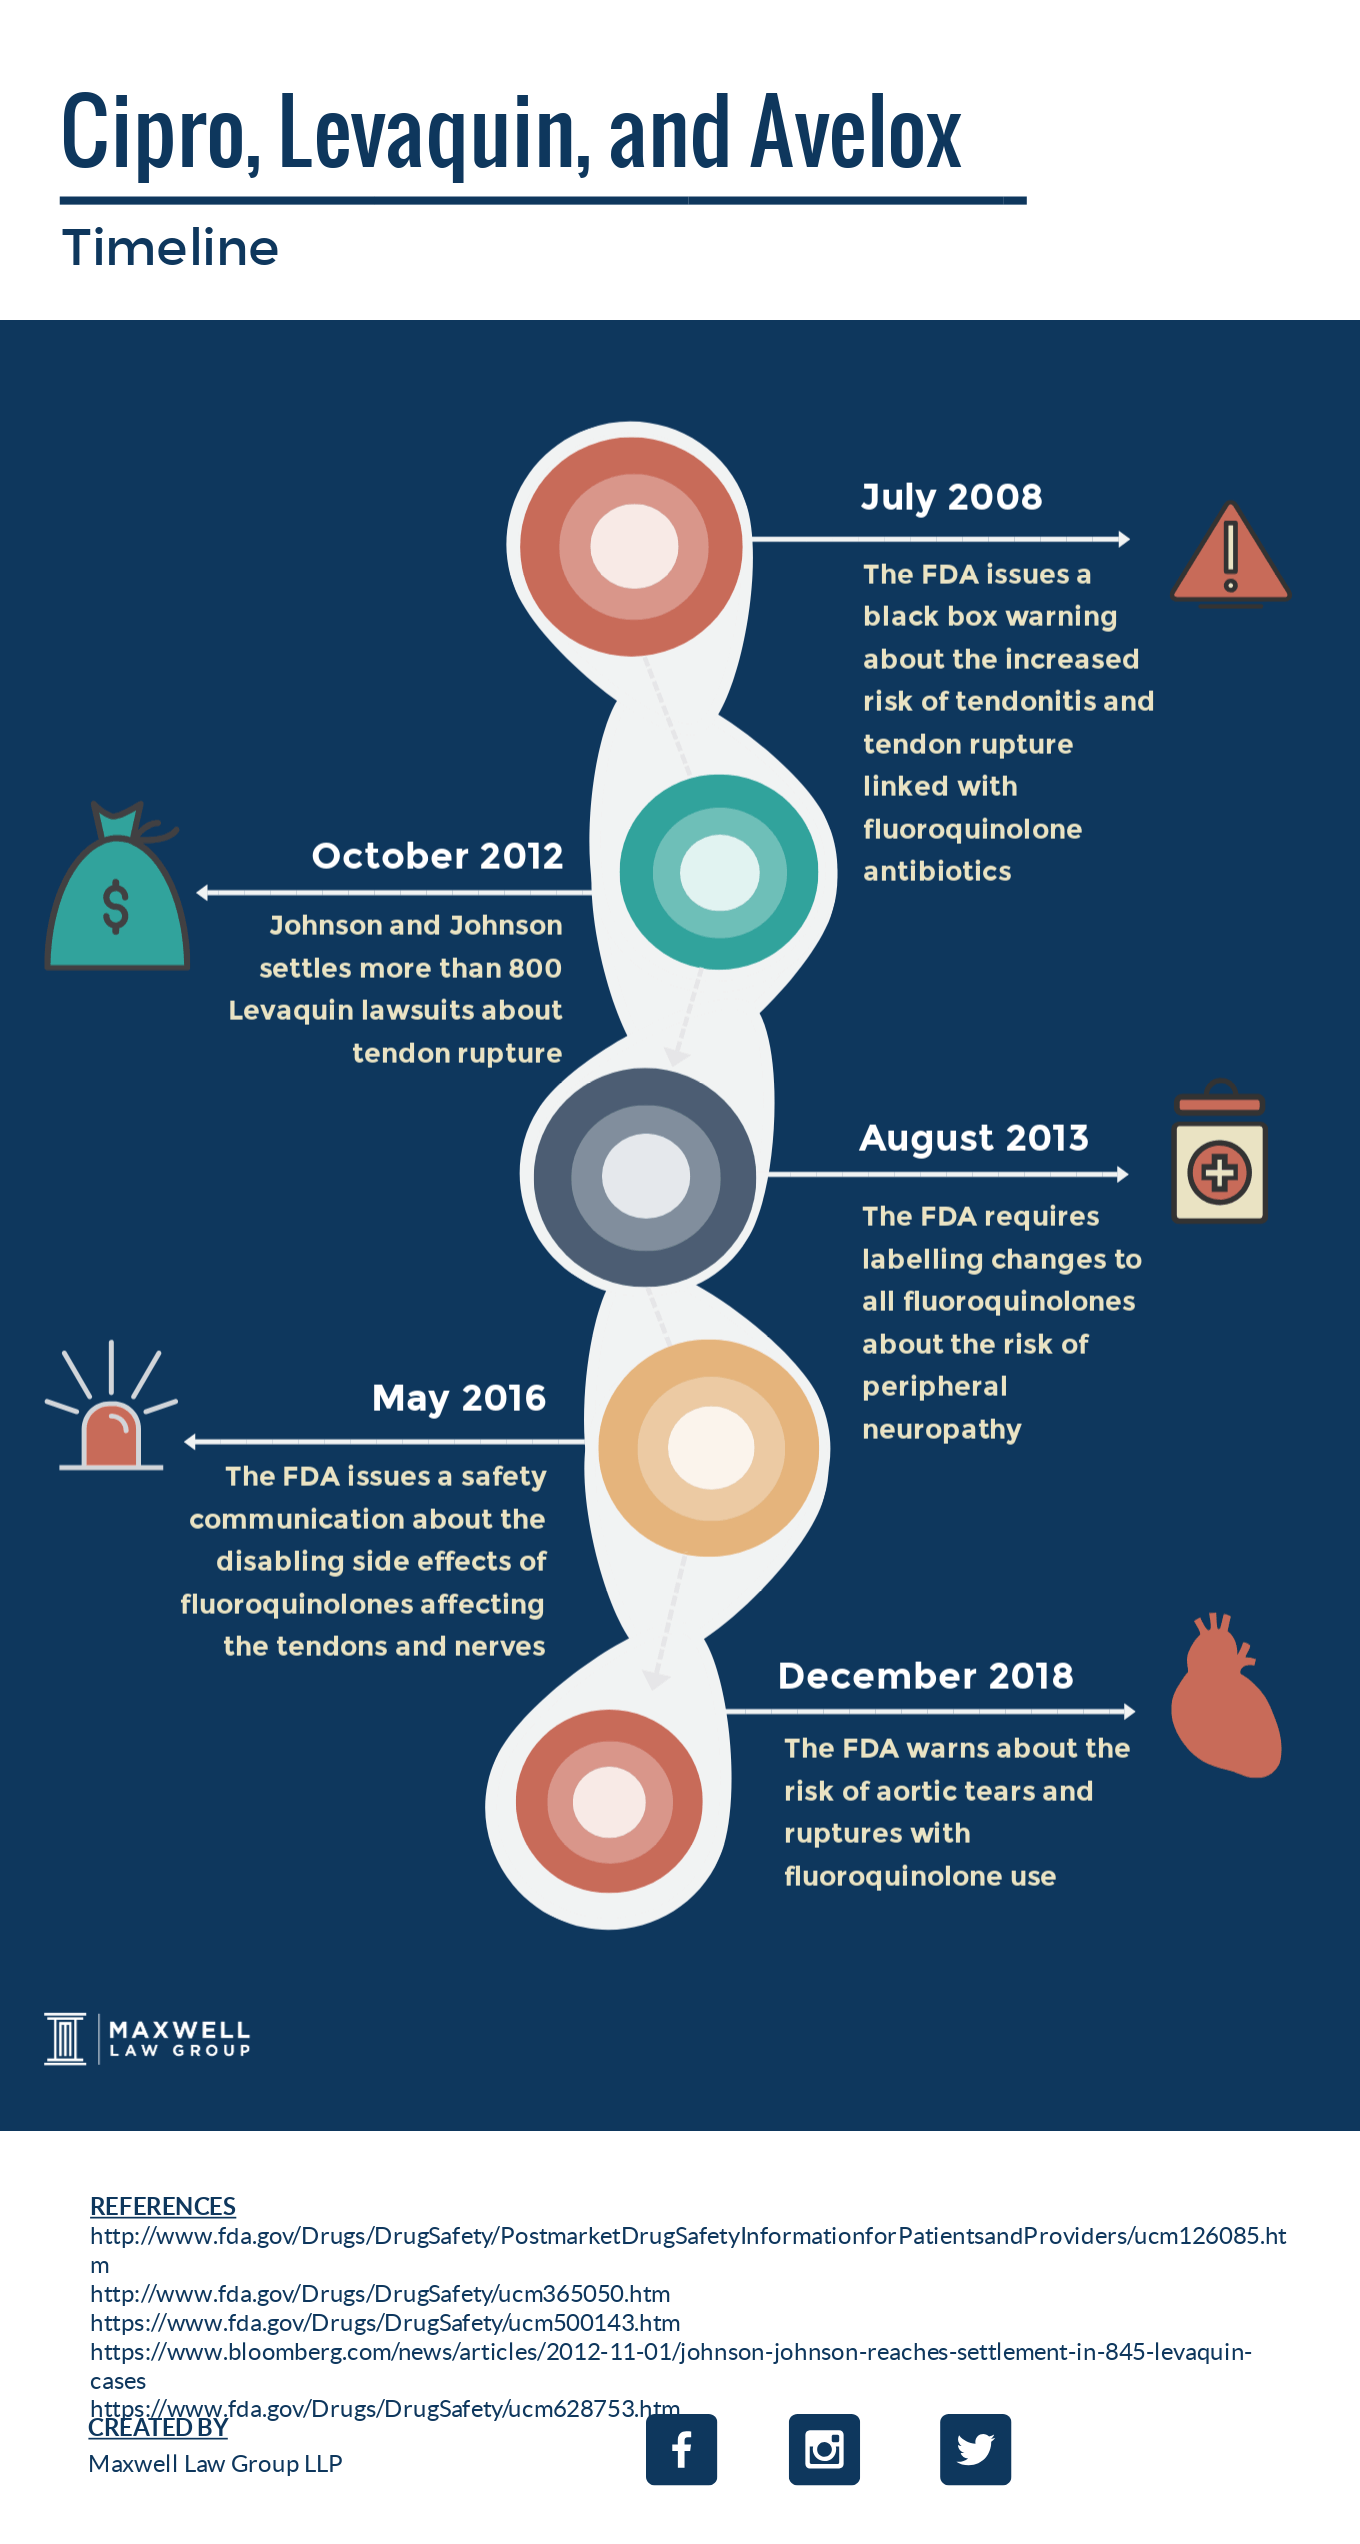 cipro levaquin avelox litigation timeline